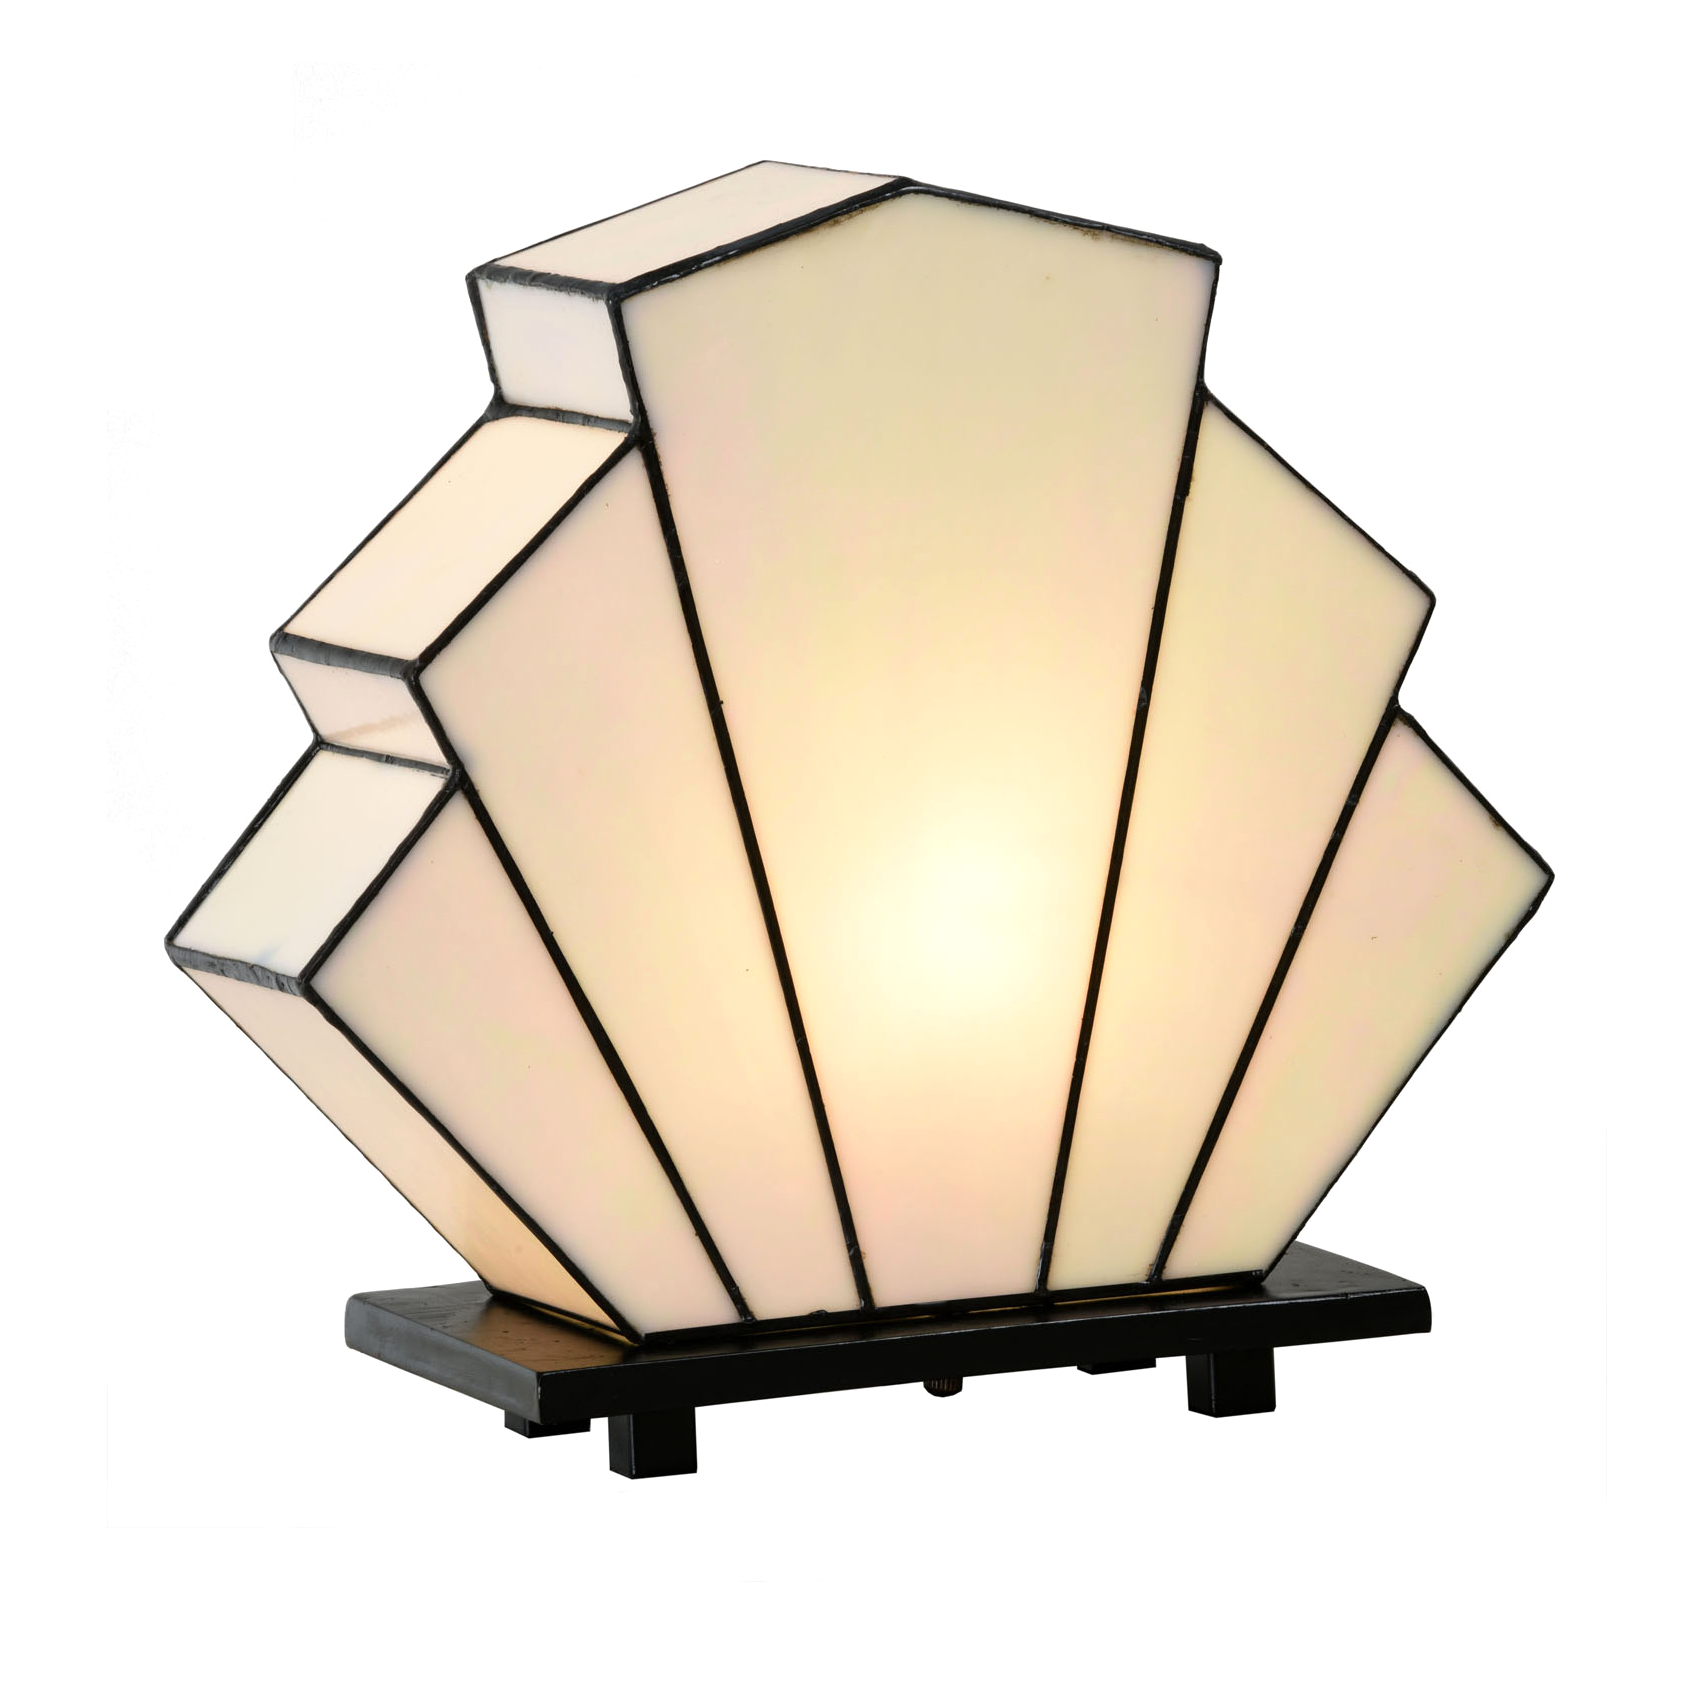 French Art Deco Tiffany Tischlampe